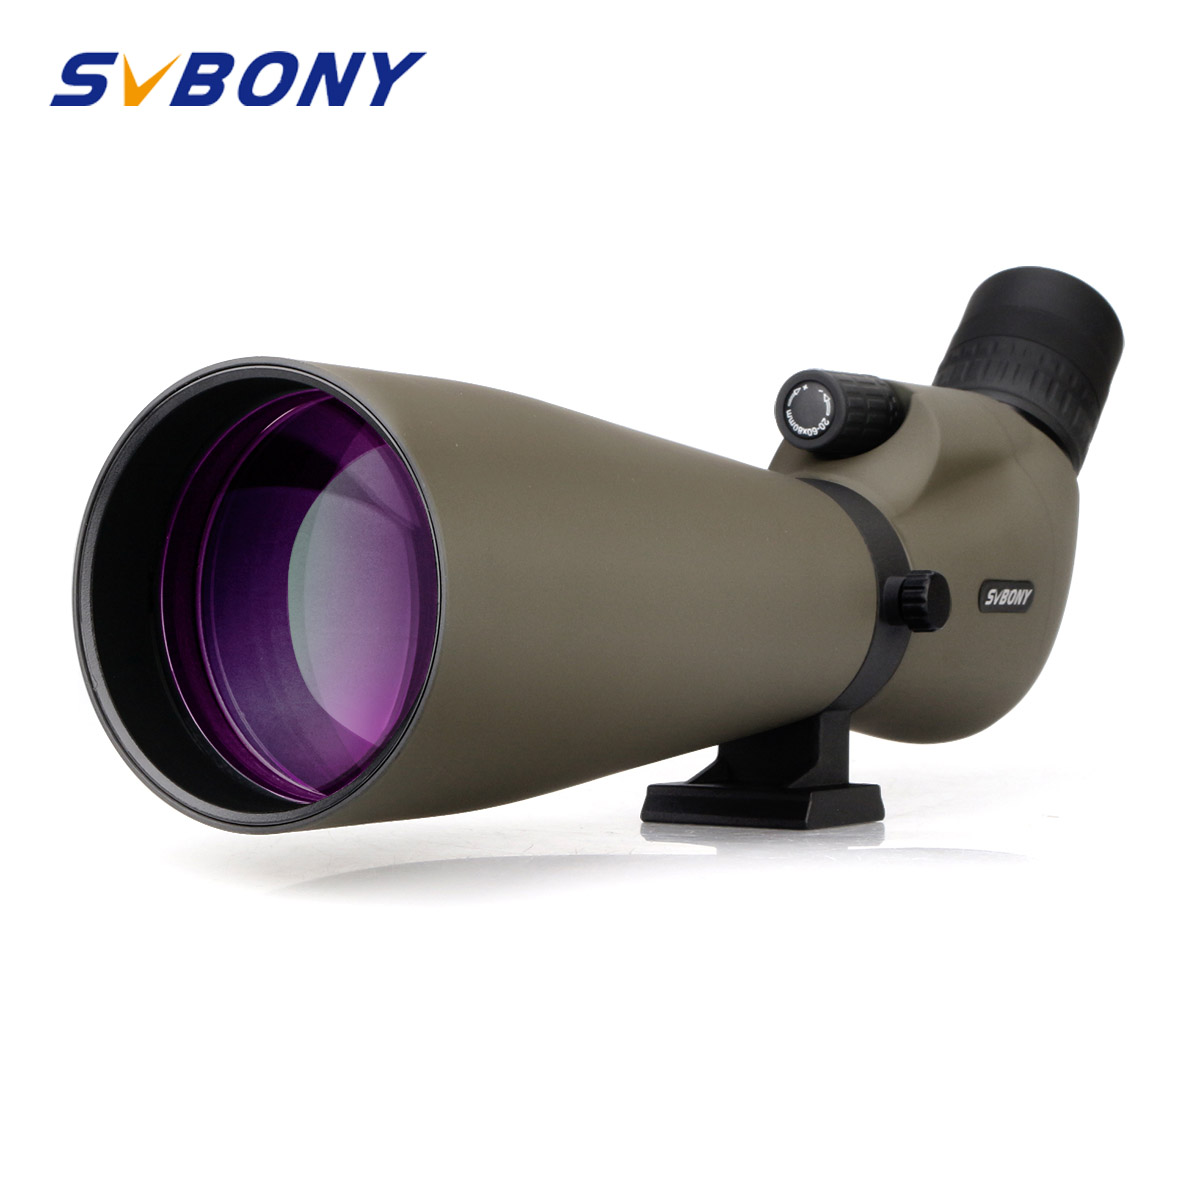 Svbony Spotting Scope 20-60x80 Zoom Monocular Telescope Multi-Coated Optics Refractor Spyglass Telescope Waterproof W/Tripod